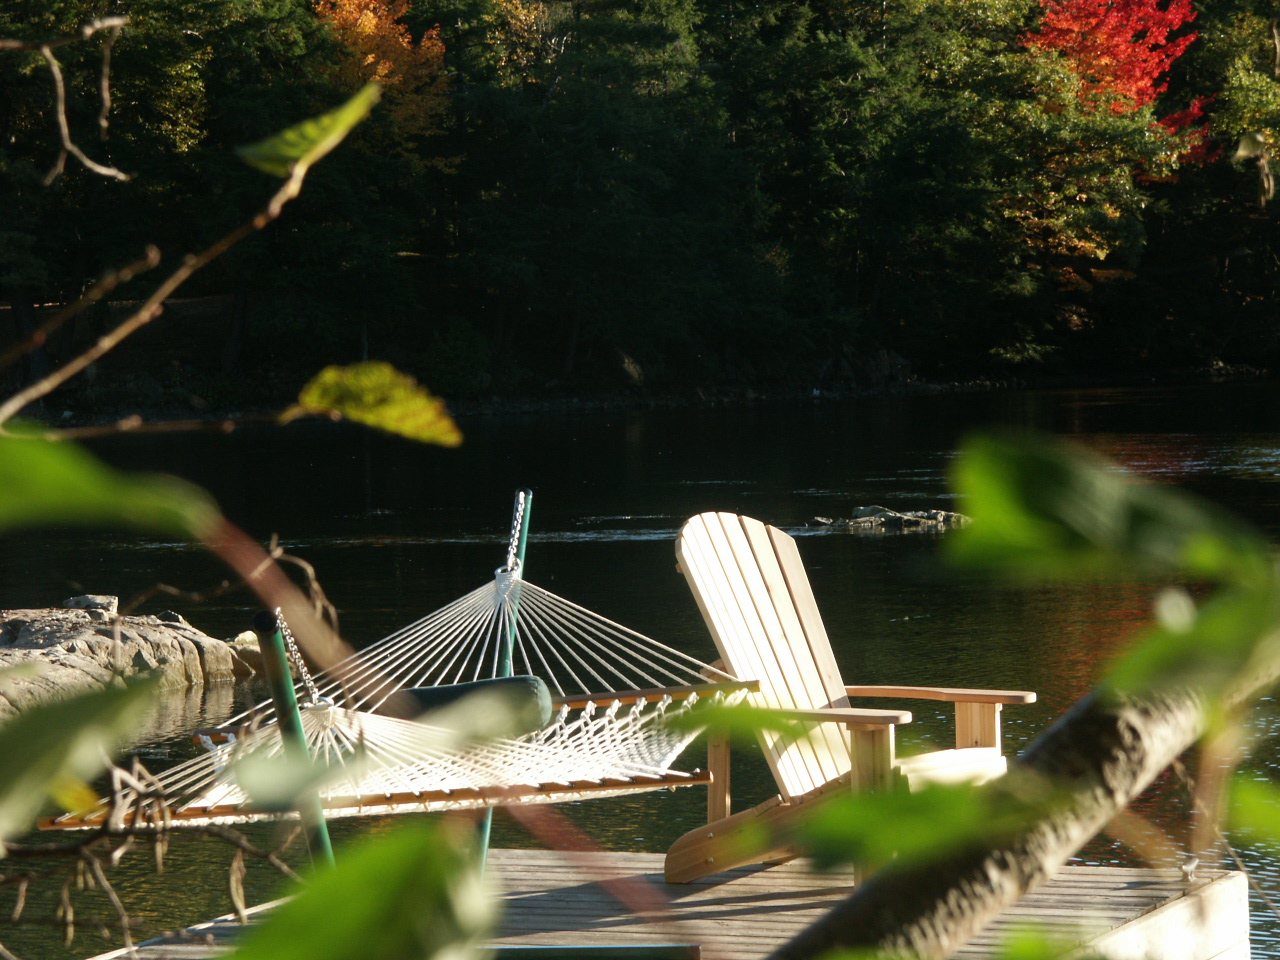 deluxe Bougainville hammock and comfy Muskoka chair on the dock